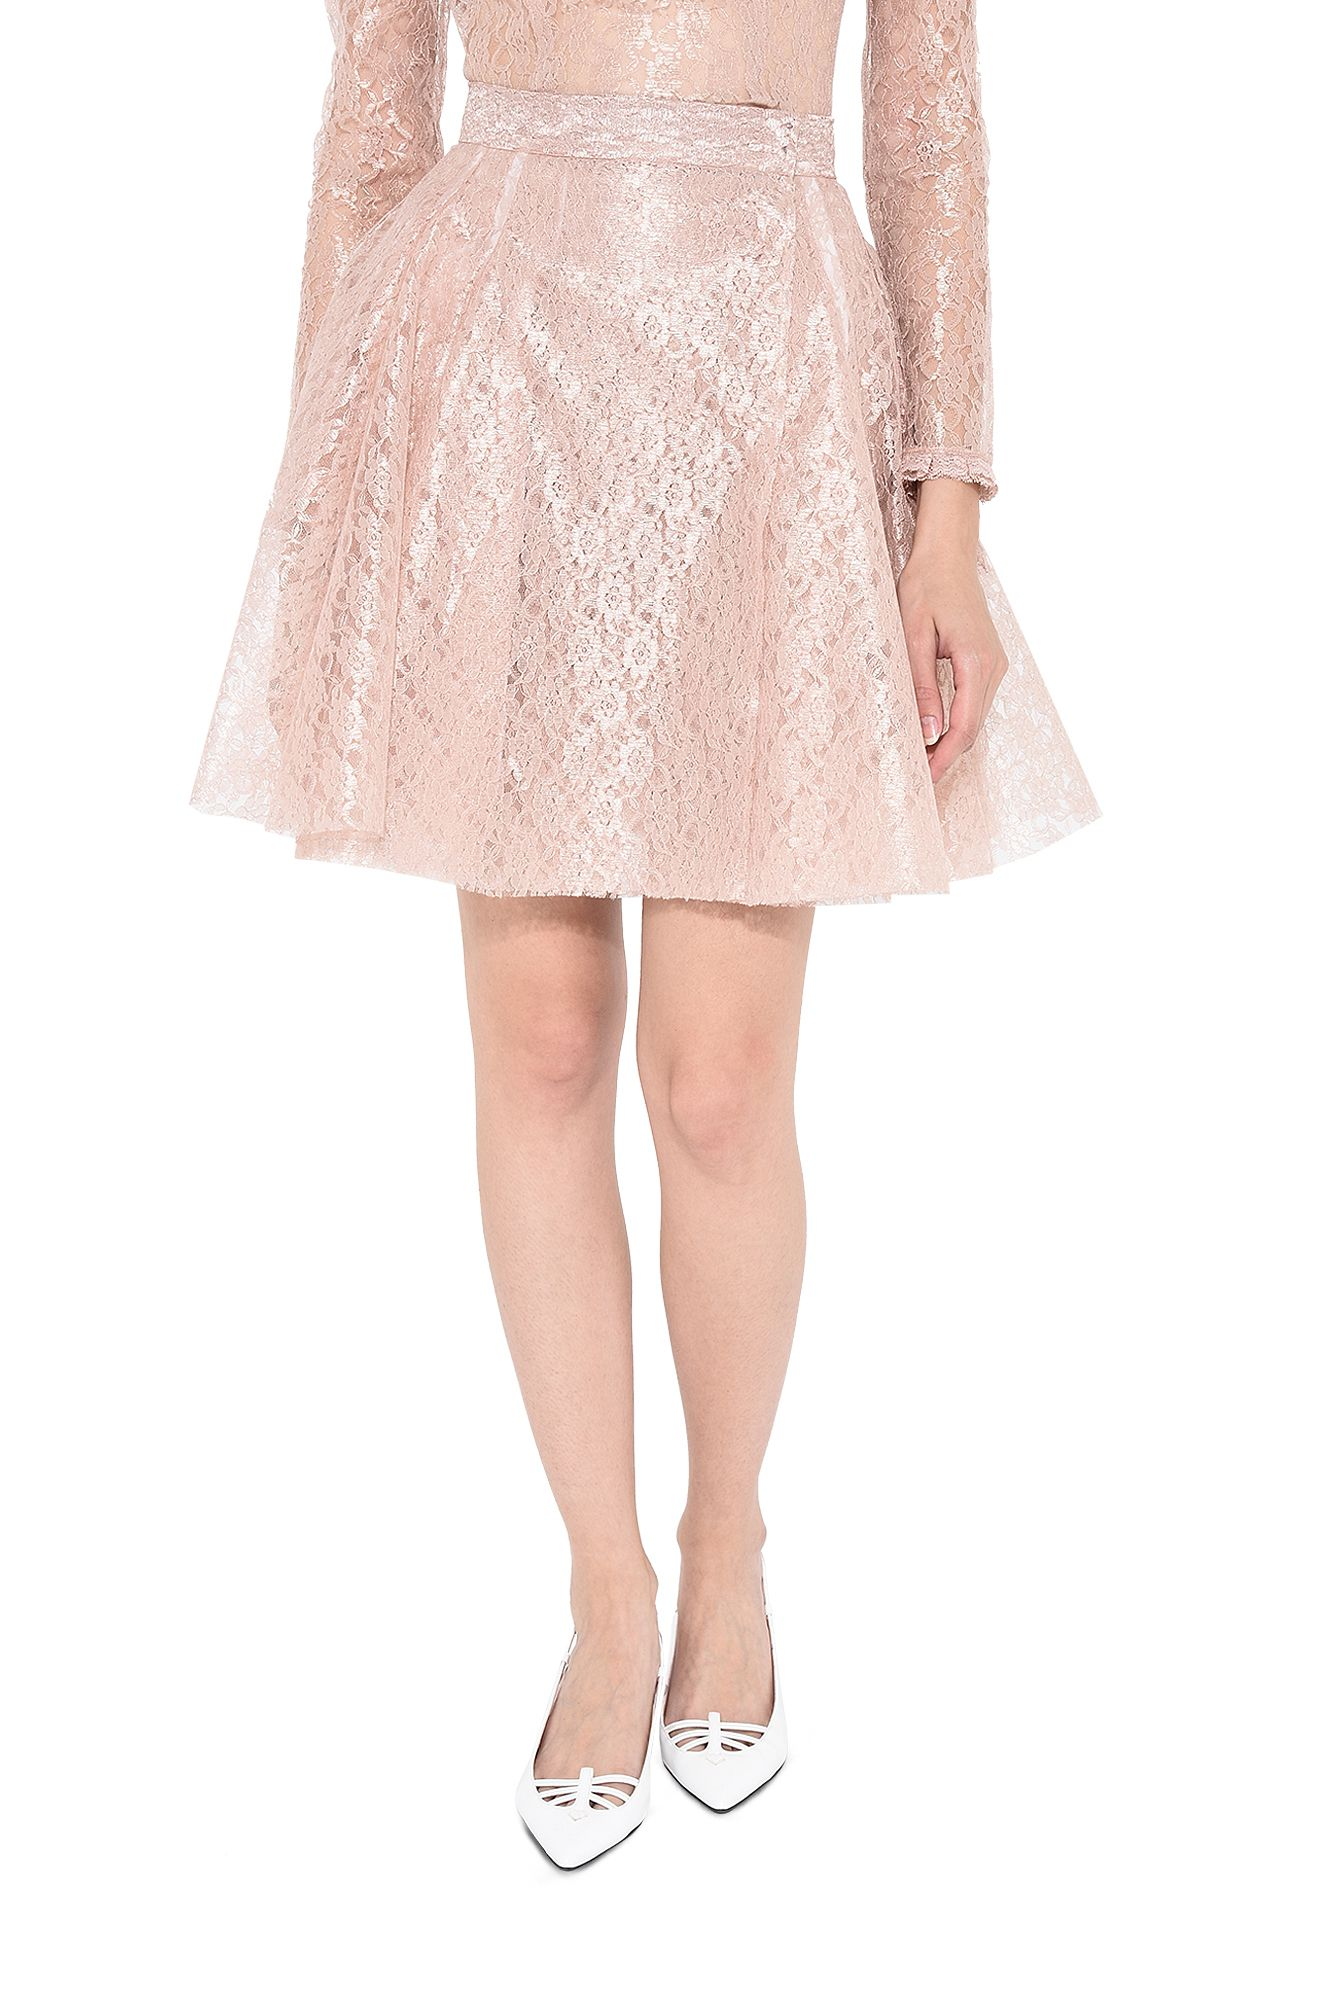 PHILOSOPHY di LORENZO SERAFINI SKIRT D Romantic skirt in lace r